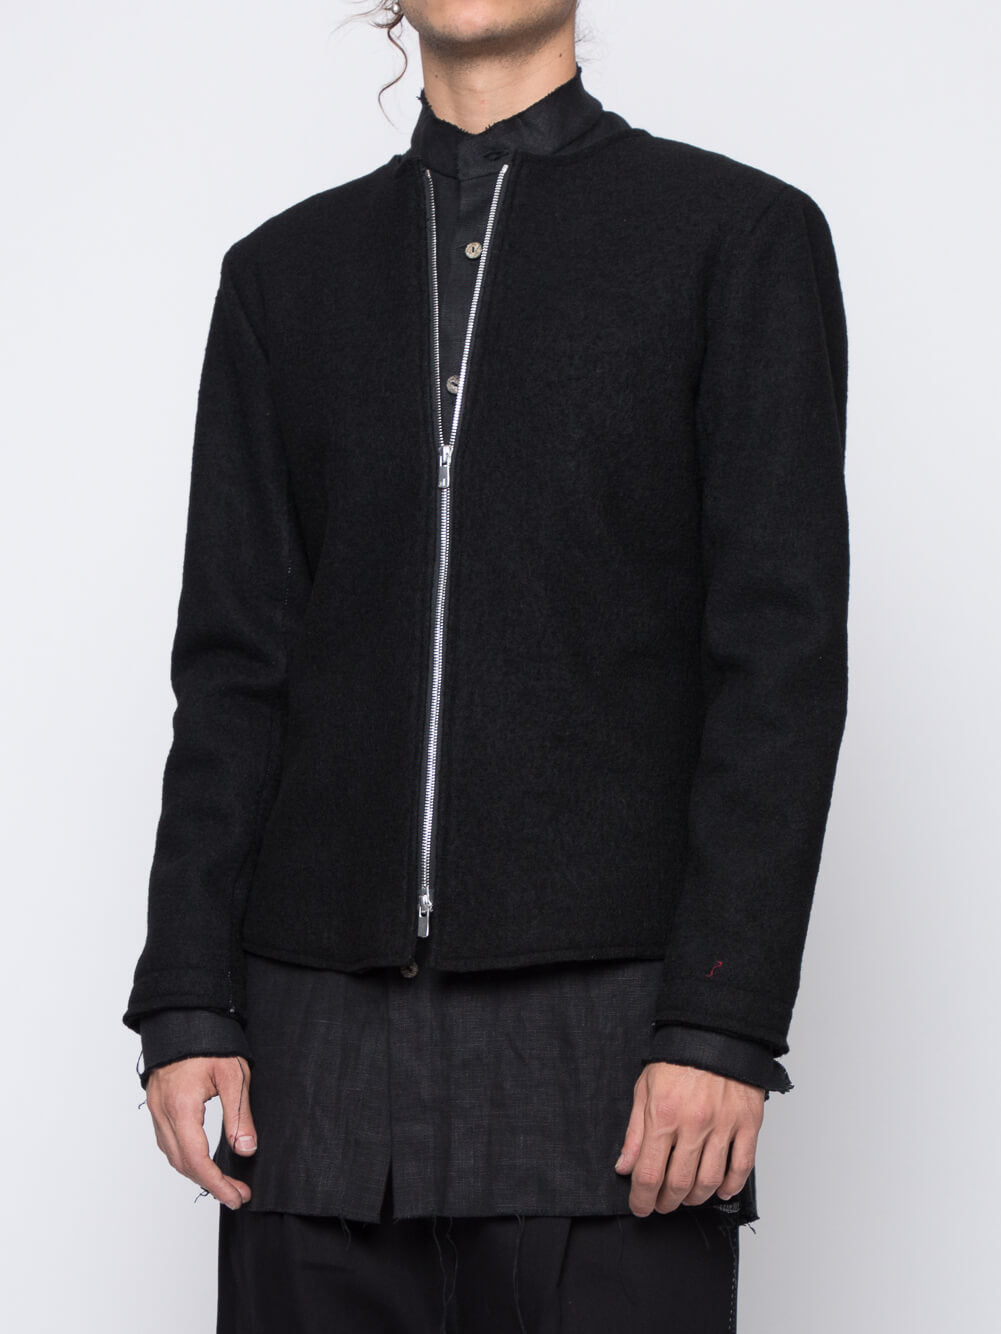 GISLI SCARSTITCHED WOOL JACKET